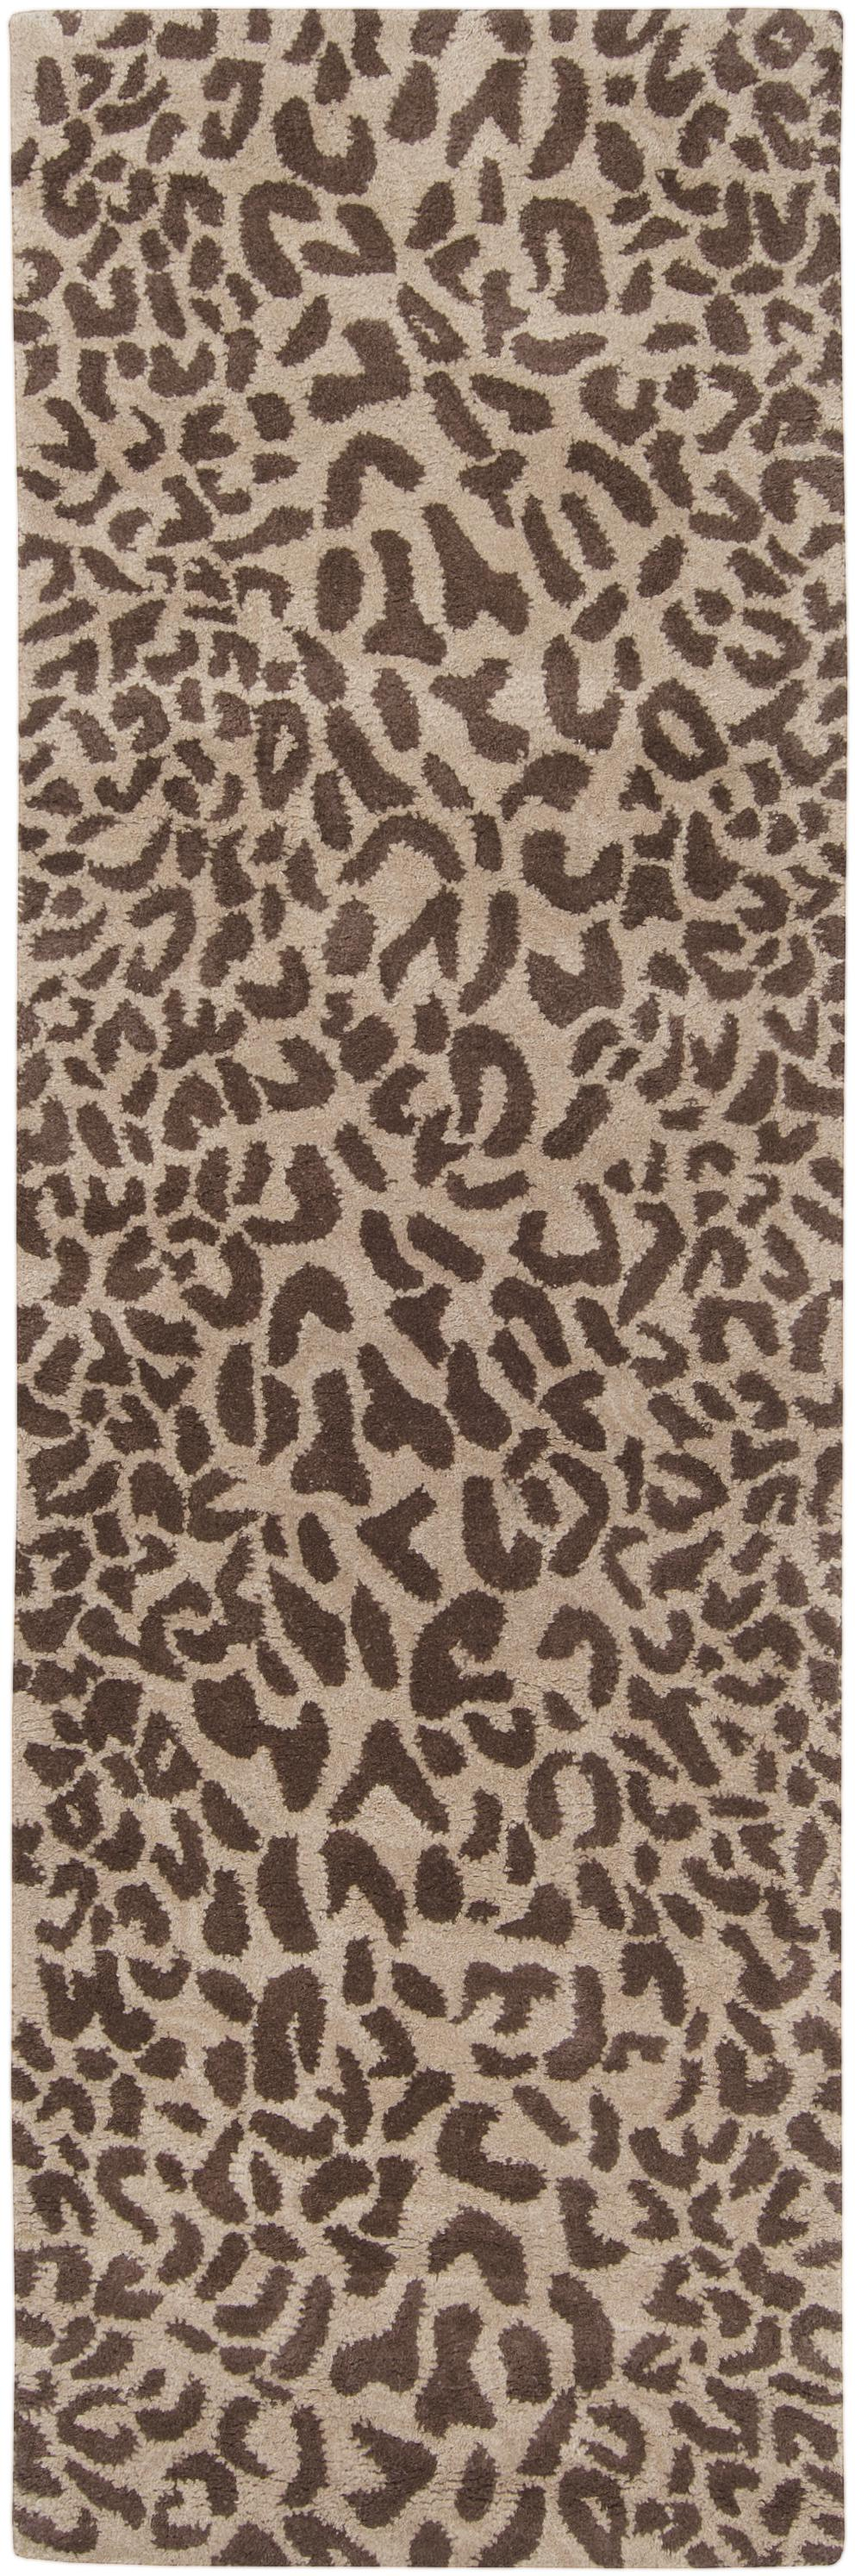 Surya Athena Ath5000 Brown Area Rug Free Shipping